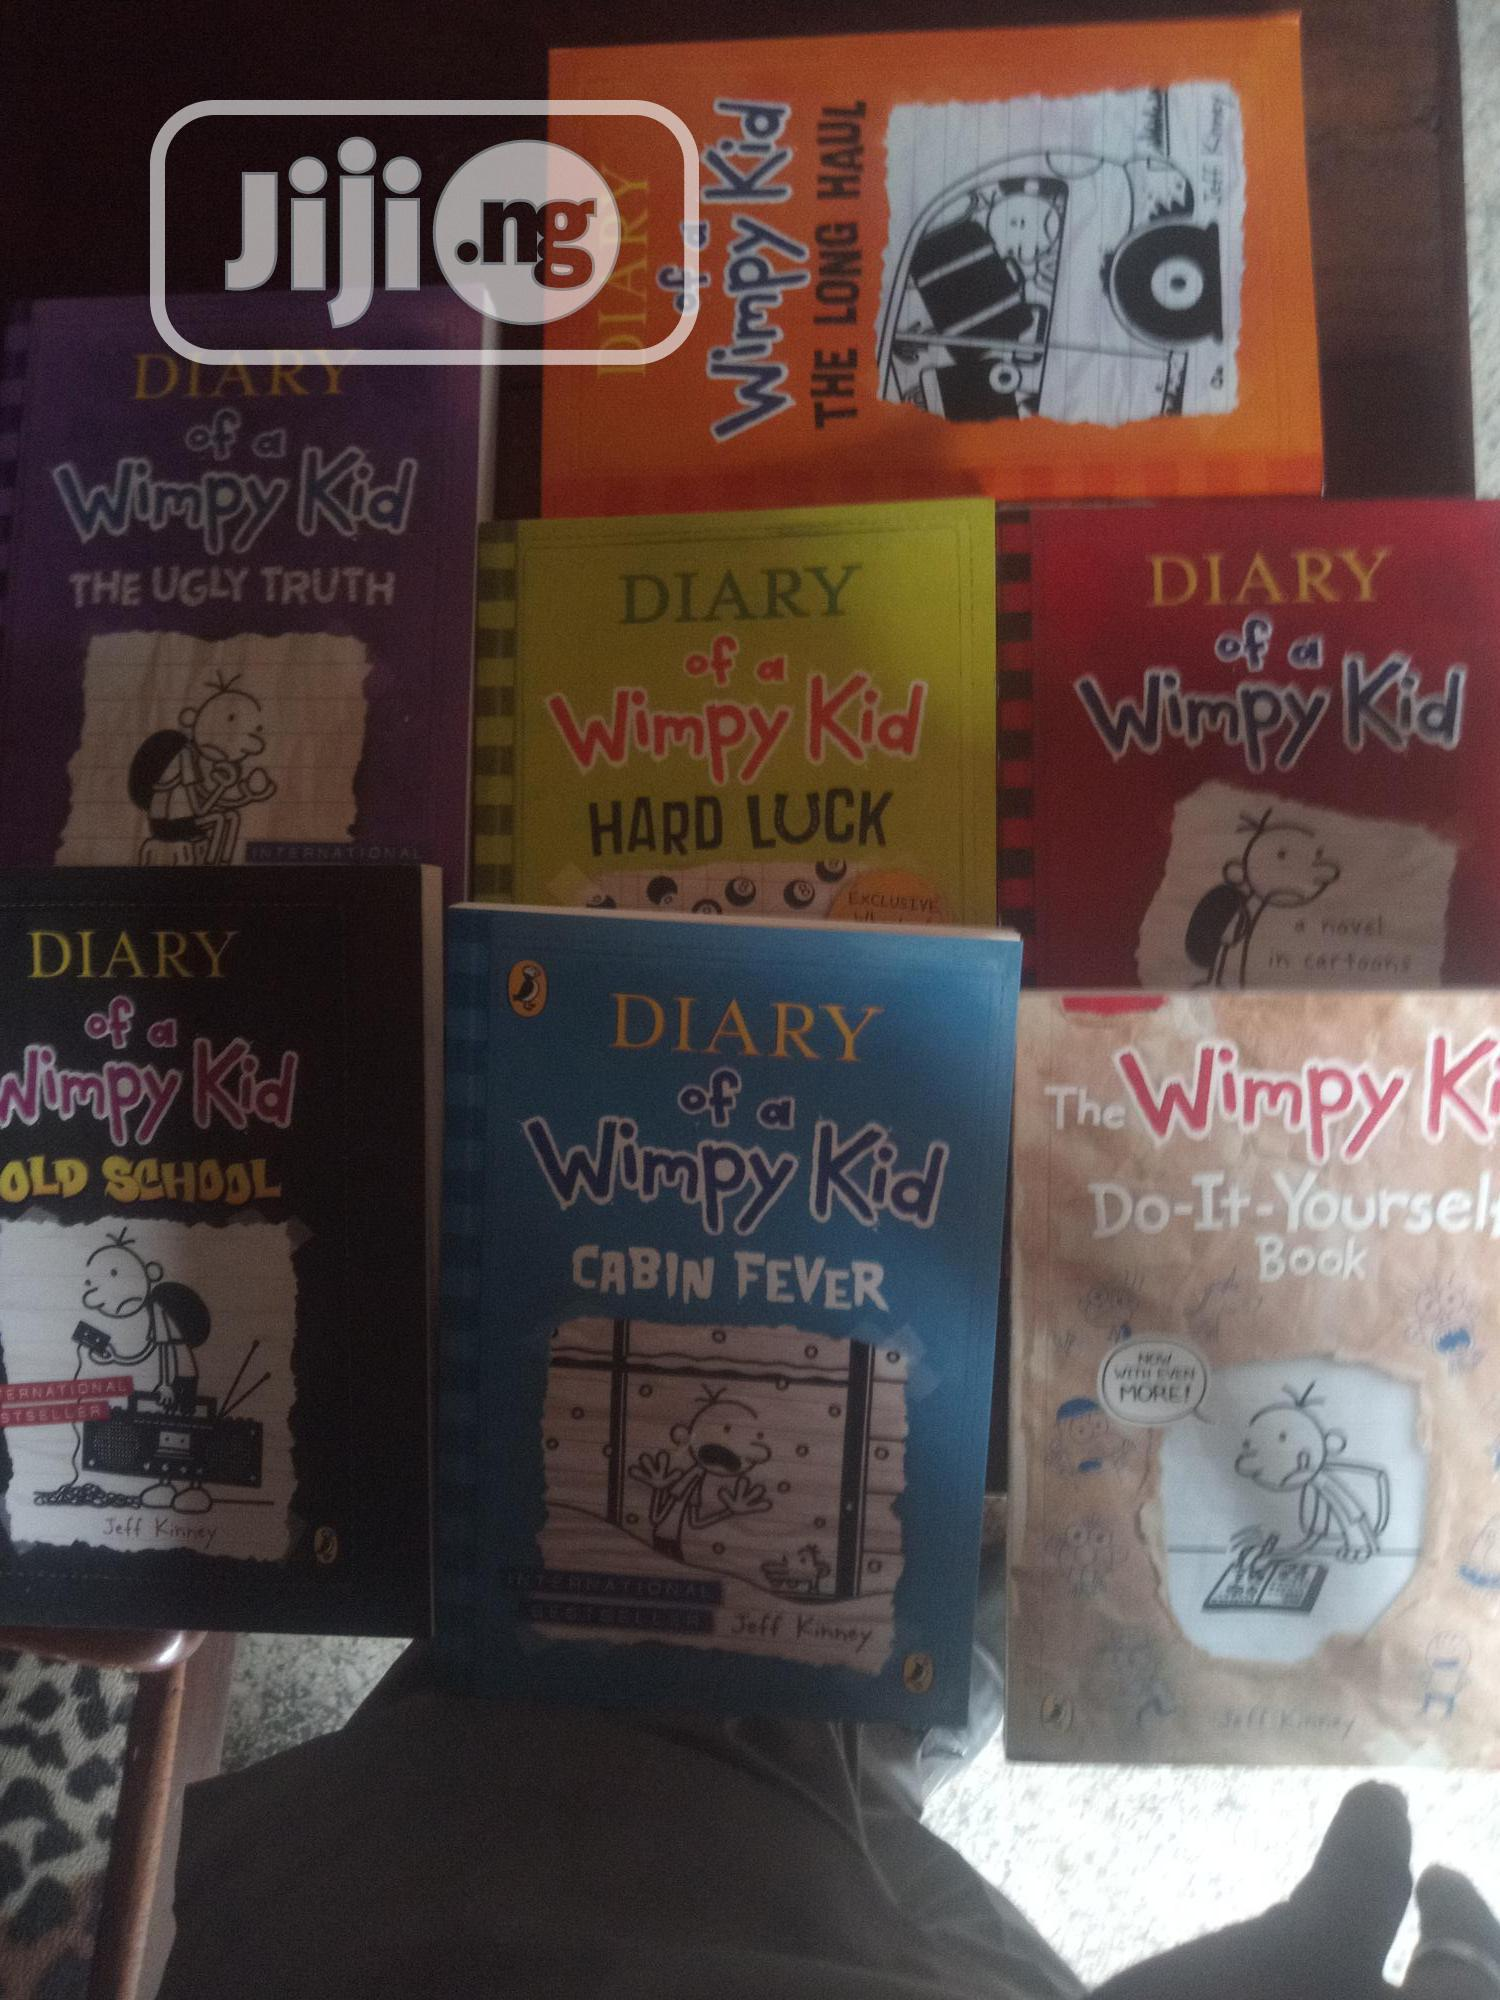 Diary Of A Wimpy